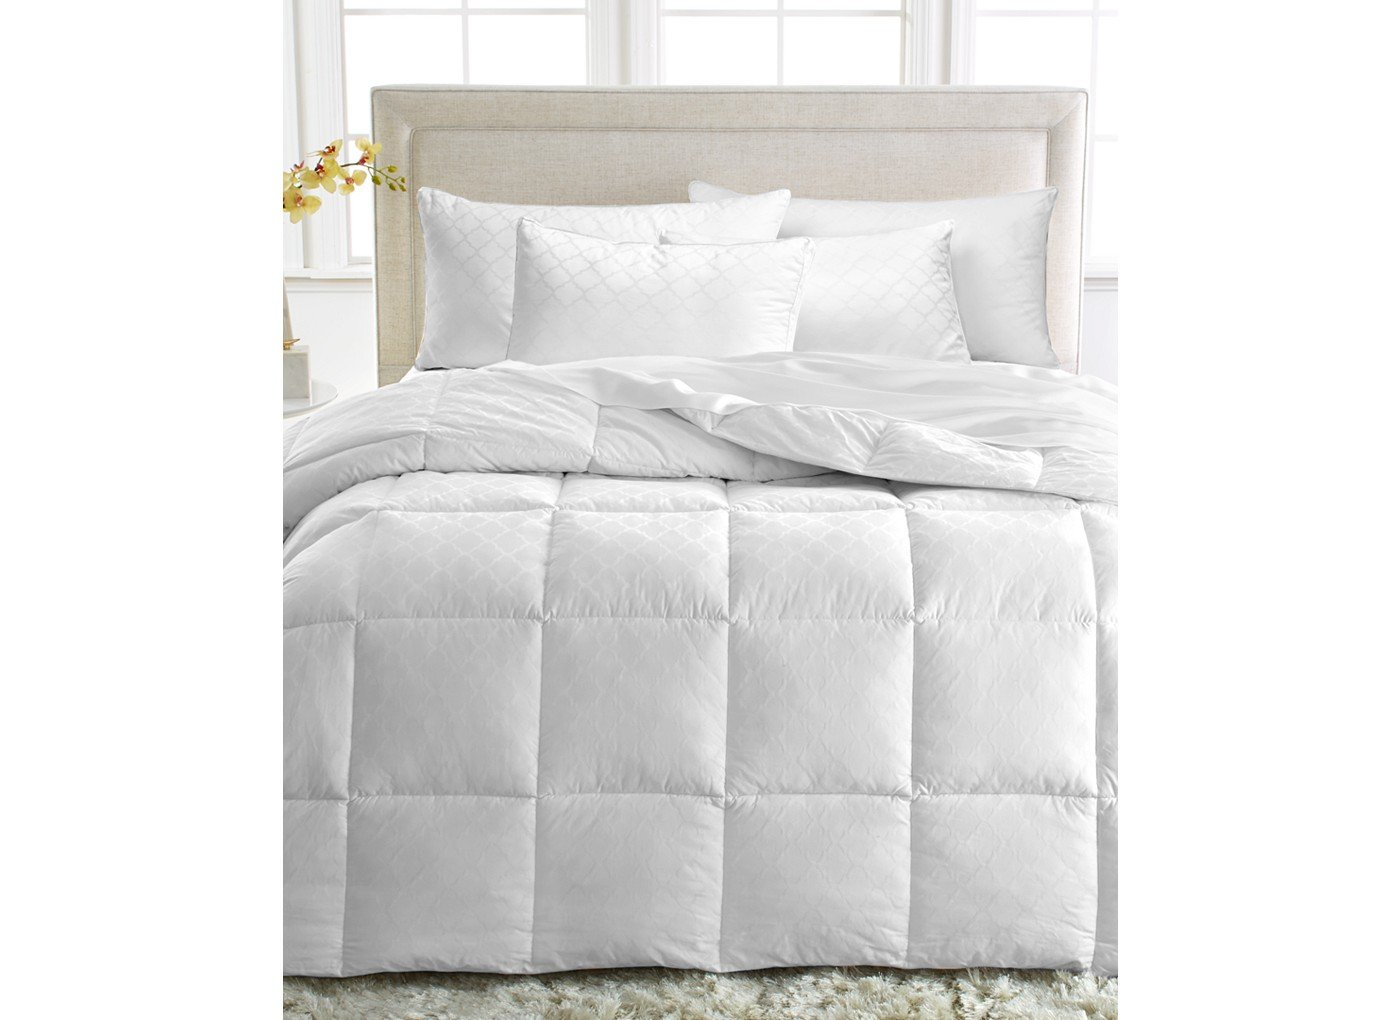 which cushion goose topsleepy is size bedding all the gallery comforters pillow best feather blanket macys down luxurious comforter